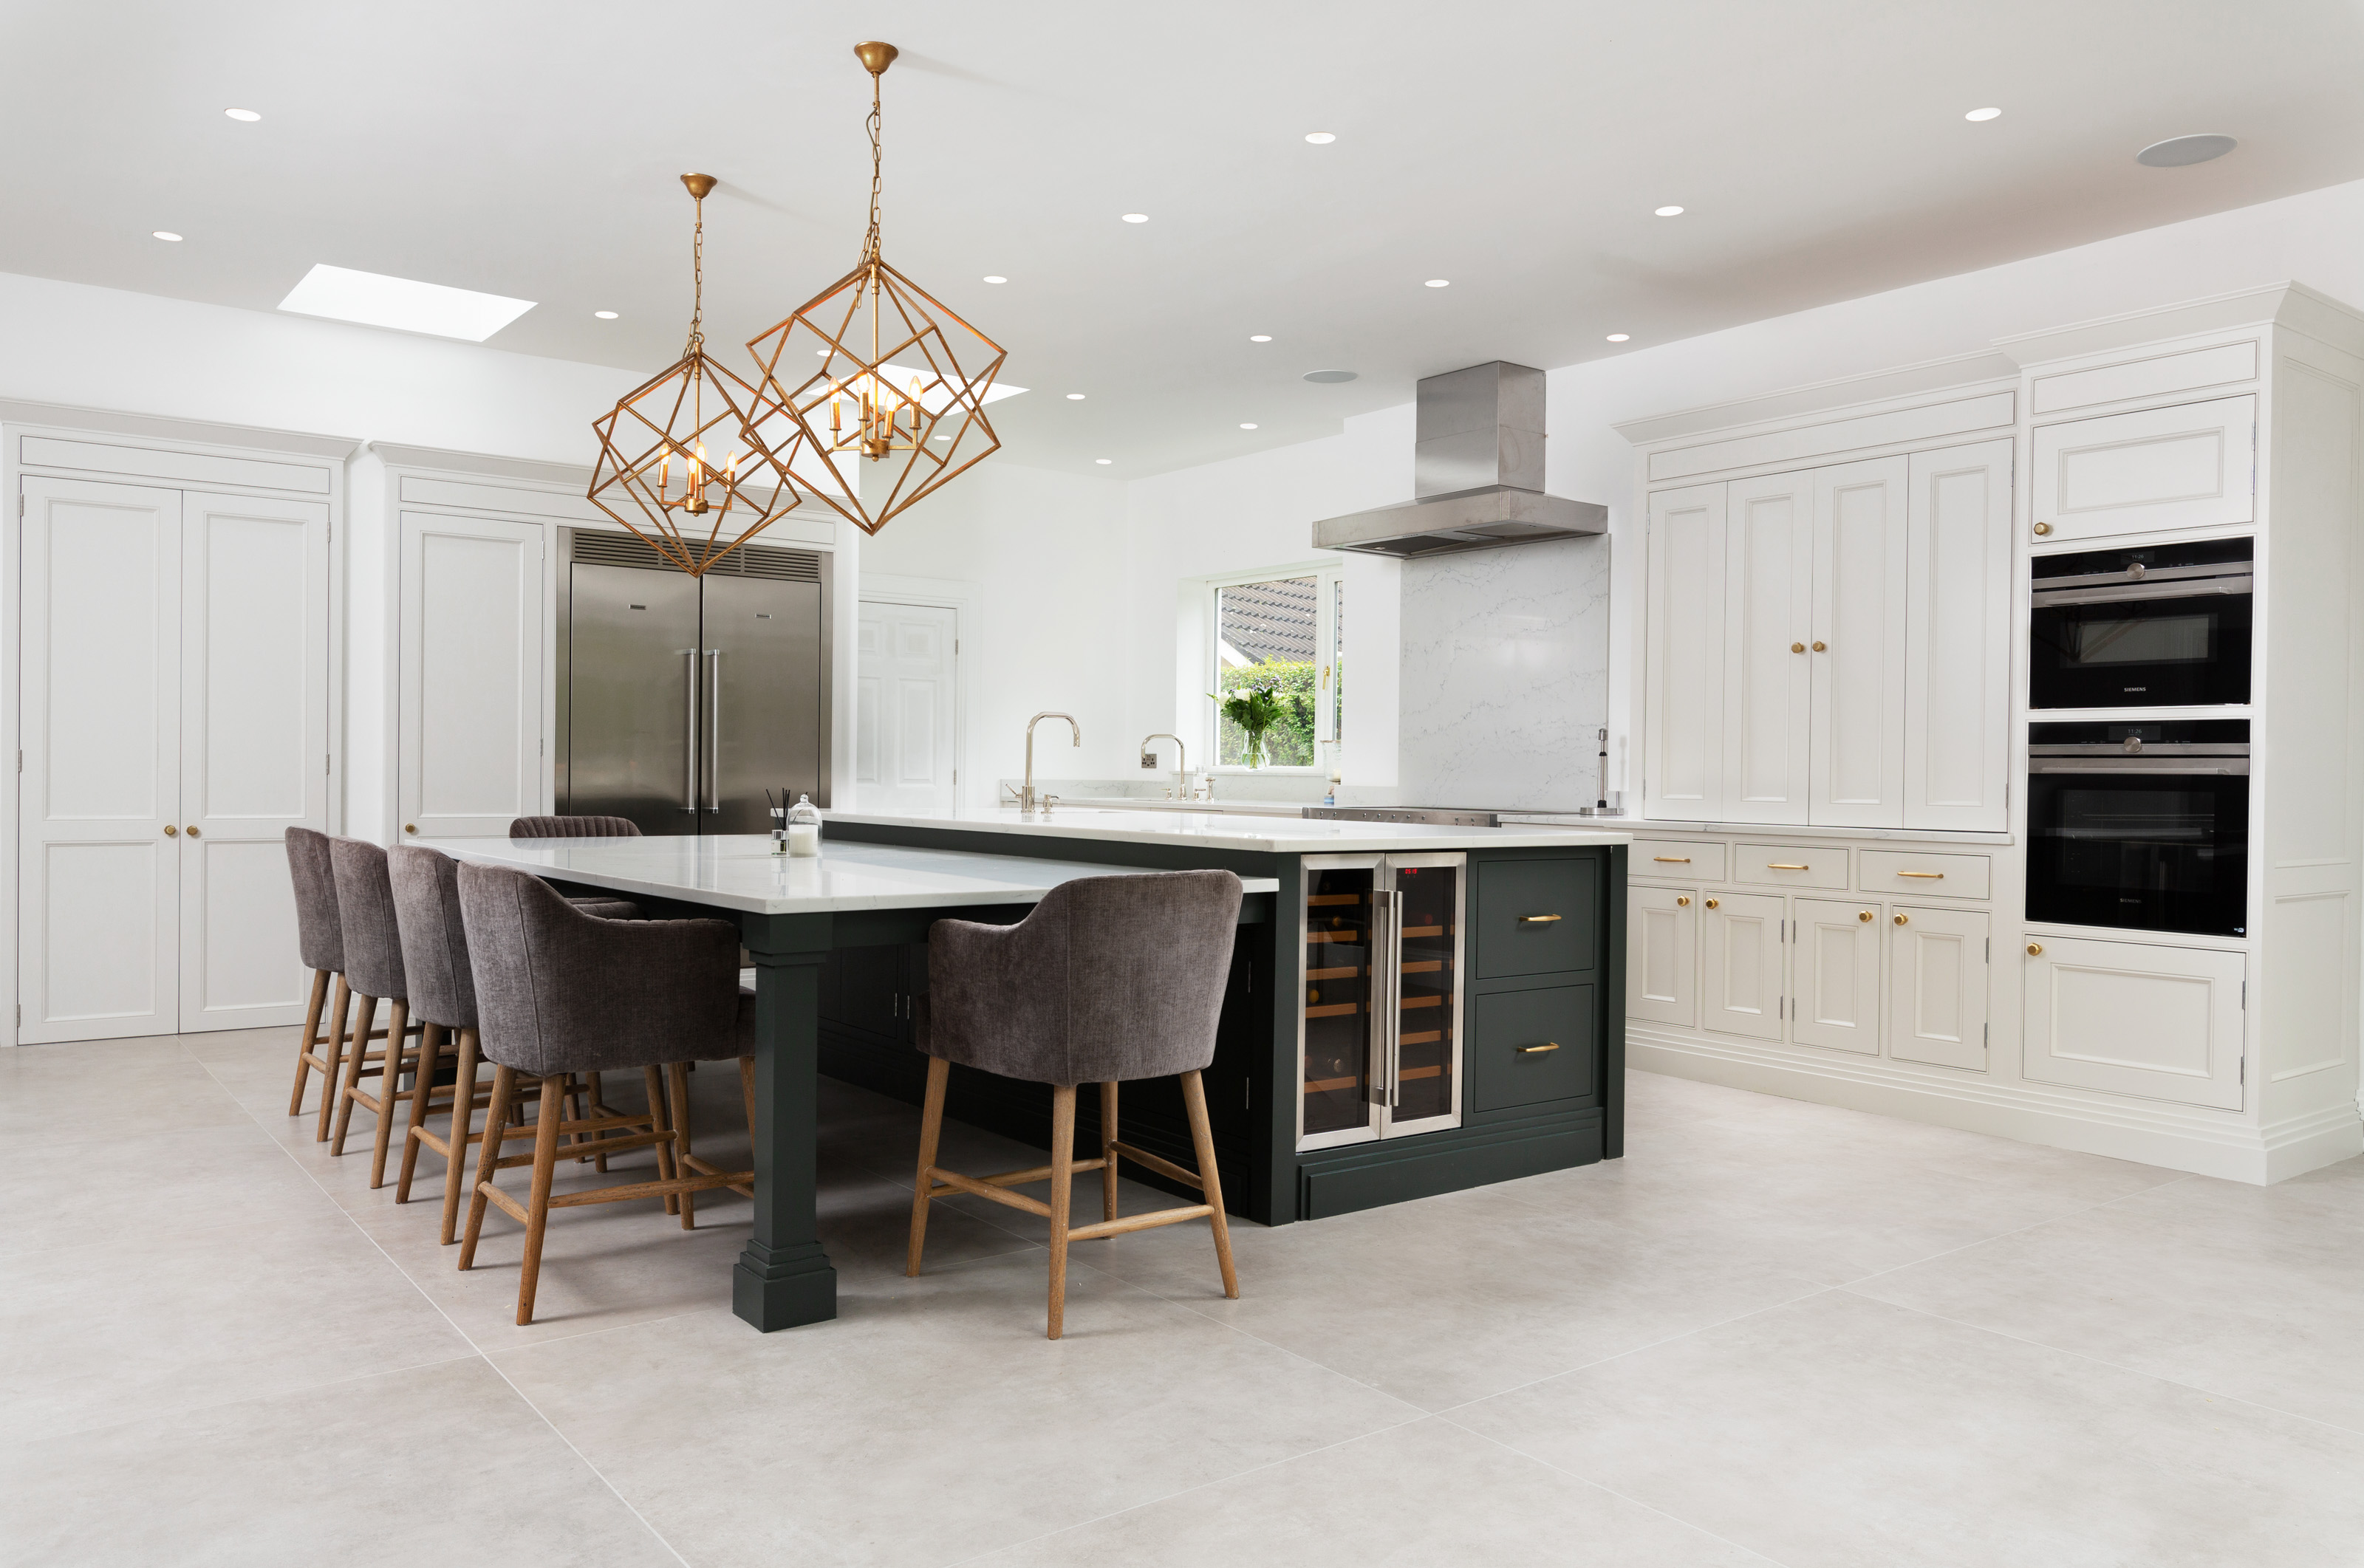 Watsons_Kitchens_Harrogate-6